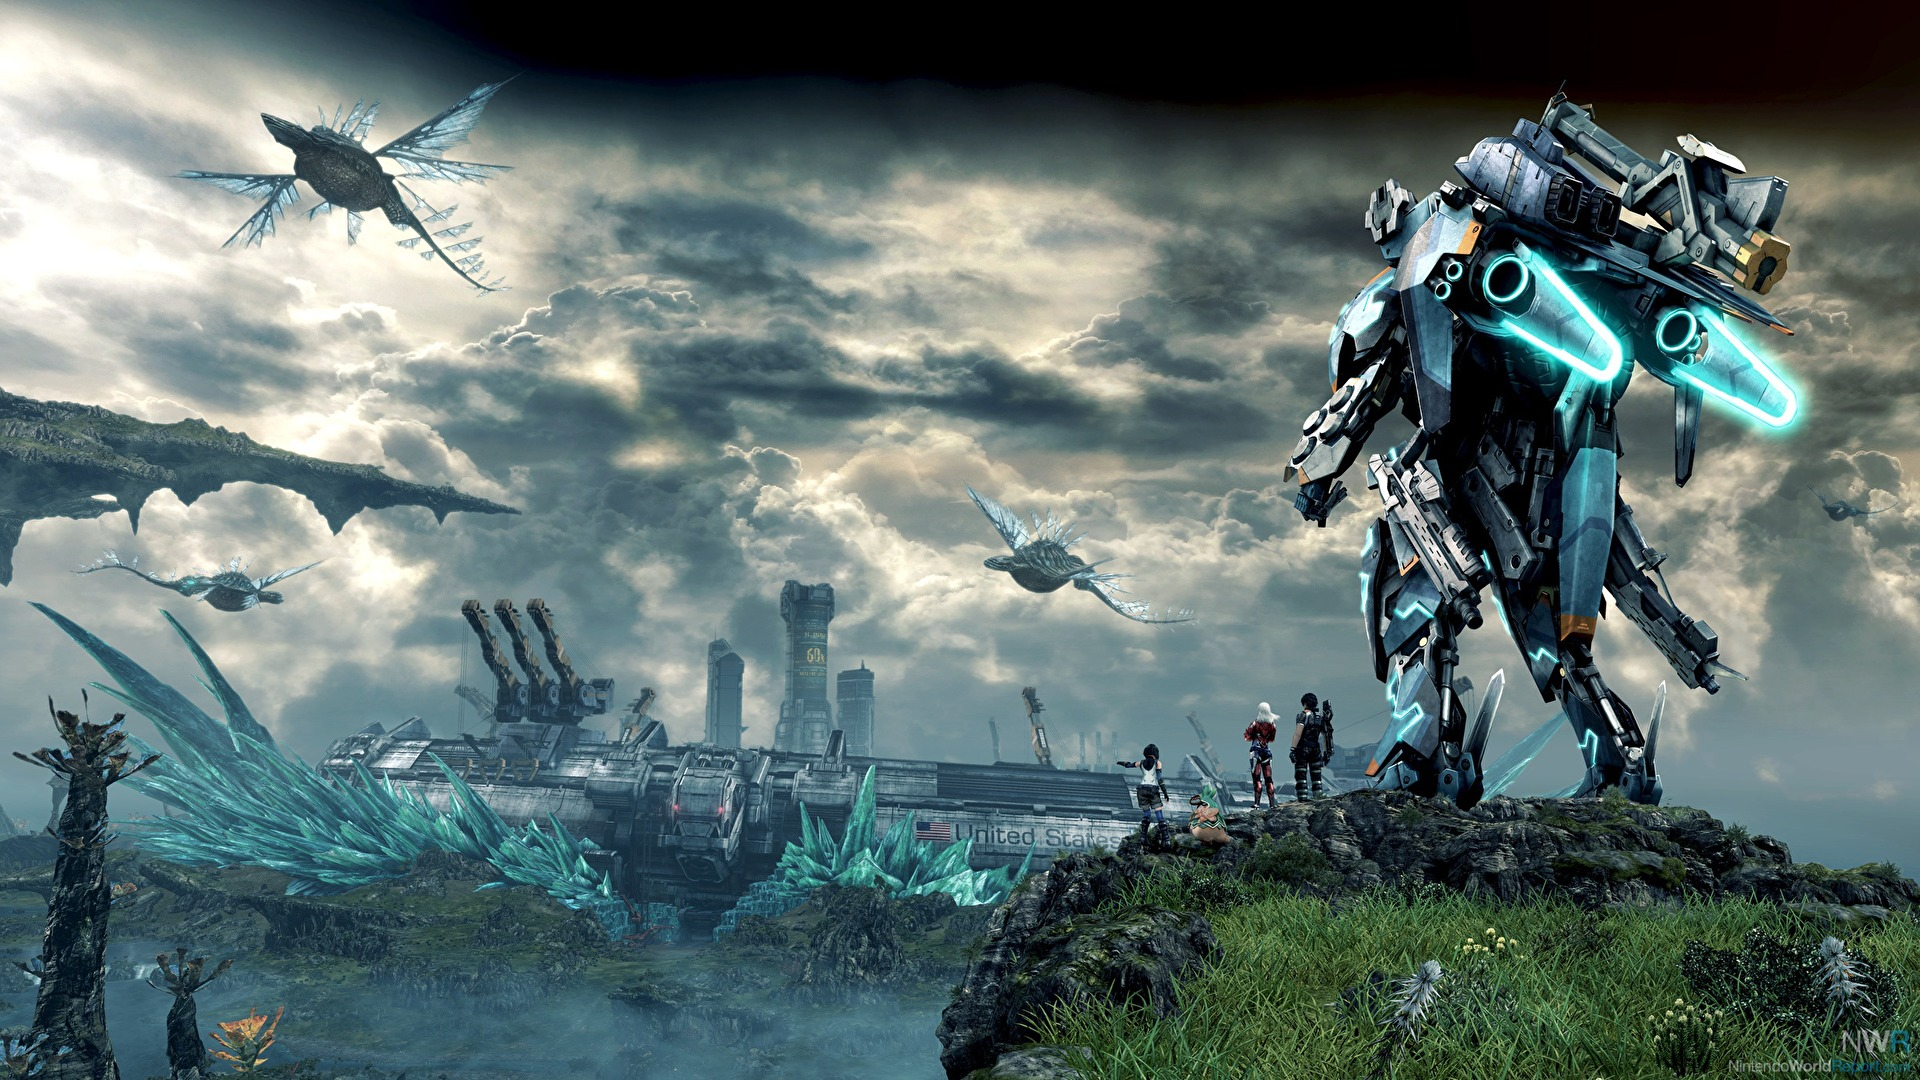 xenoblade chronicles x is bigger than skyrim fallout 4 or witcher